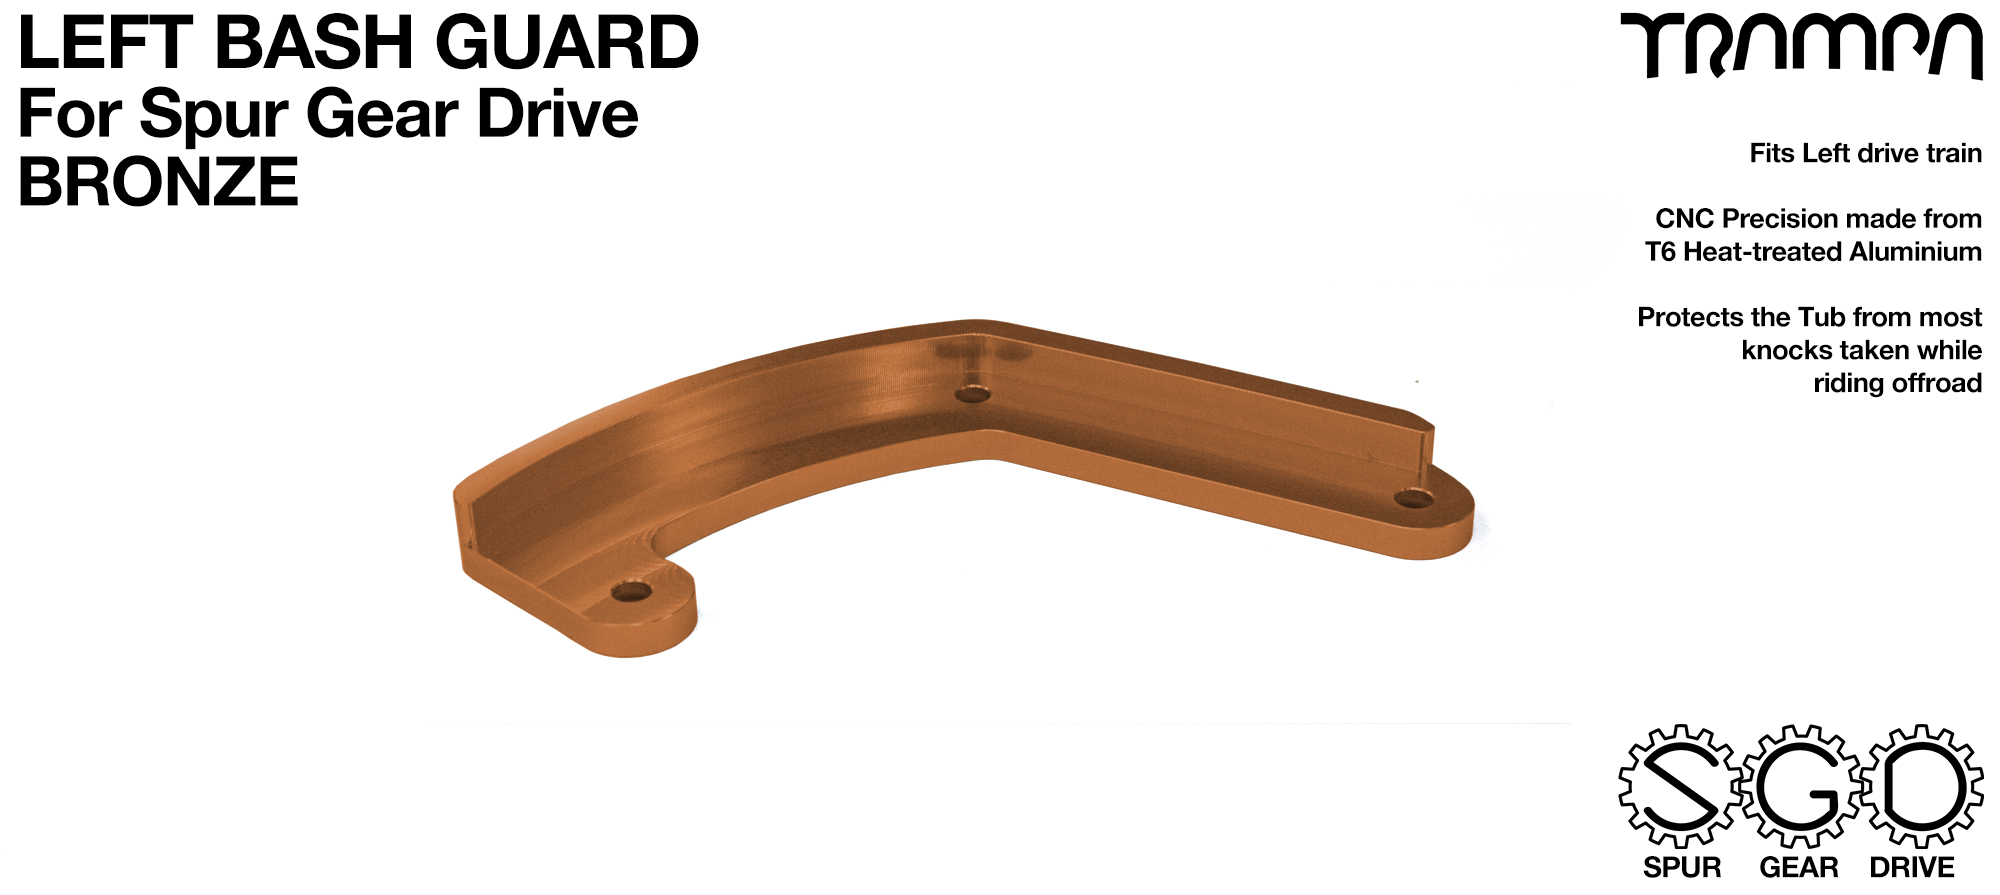 MkII Spur Gear Drive Bash Guard - LEFT Side - BRONZE